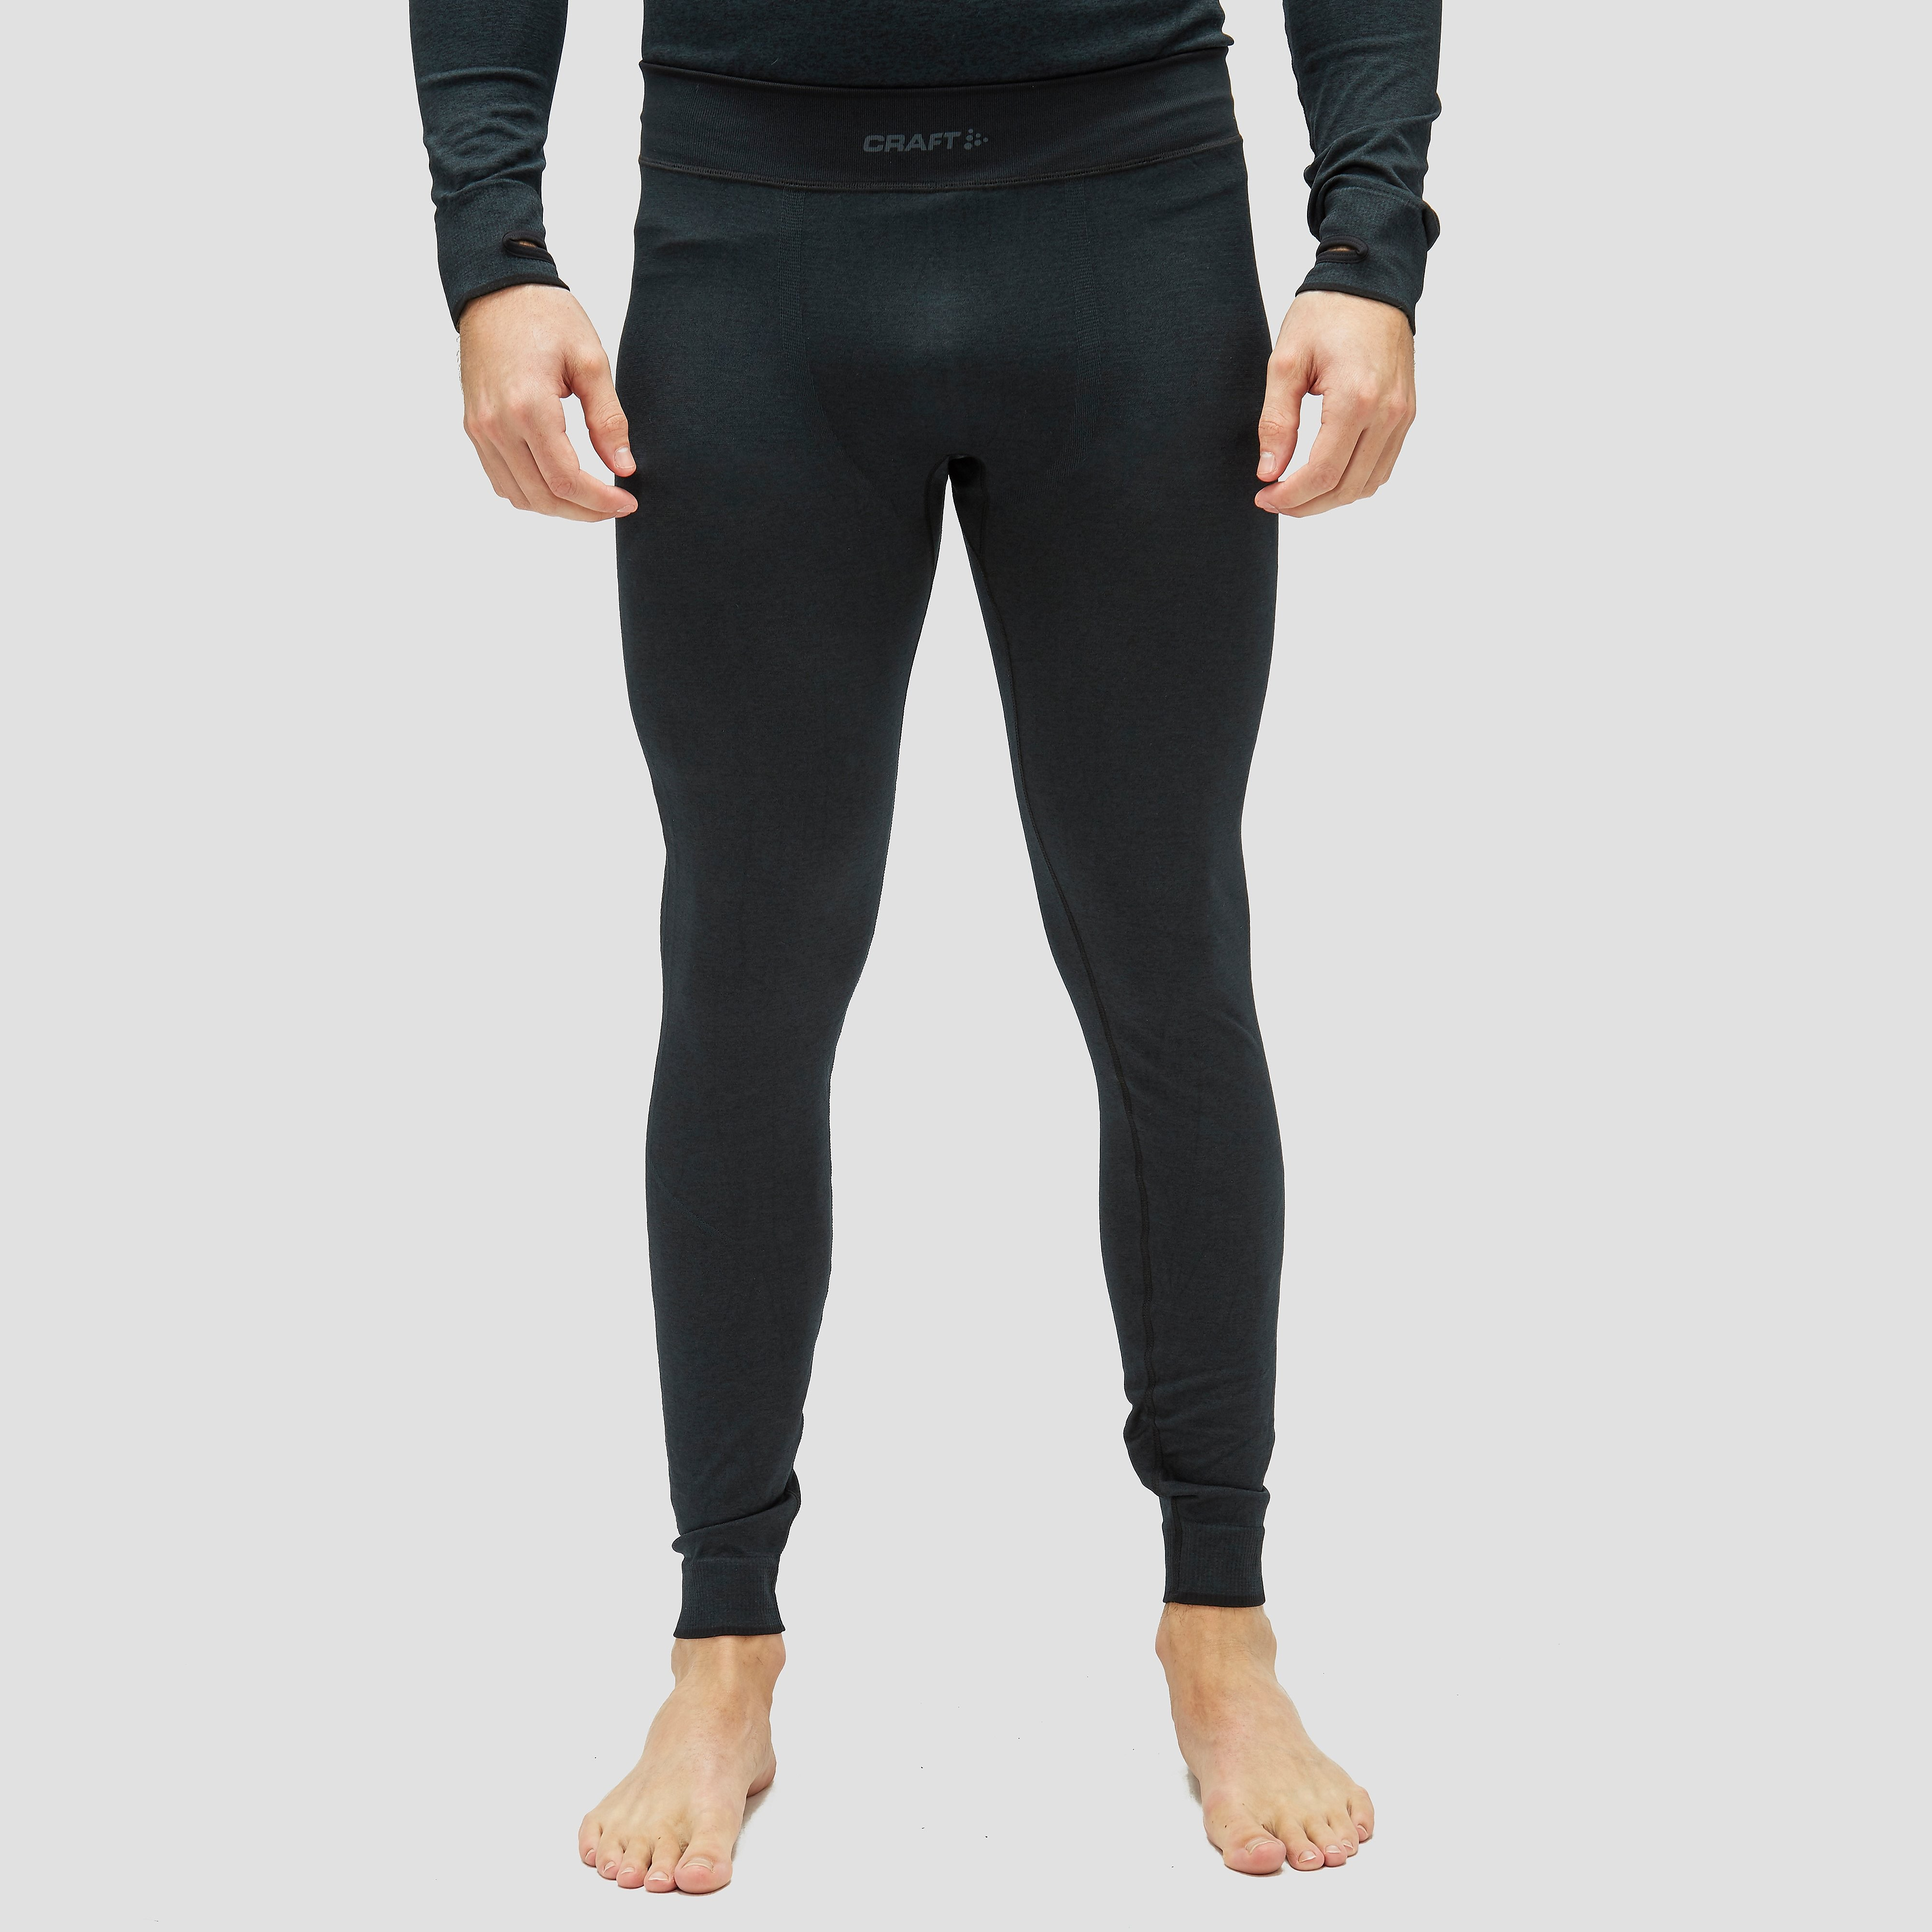 CRAFT ACTIVE COMFORT WINTER BROEK ZWART HEREN